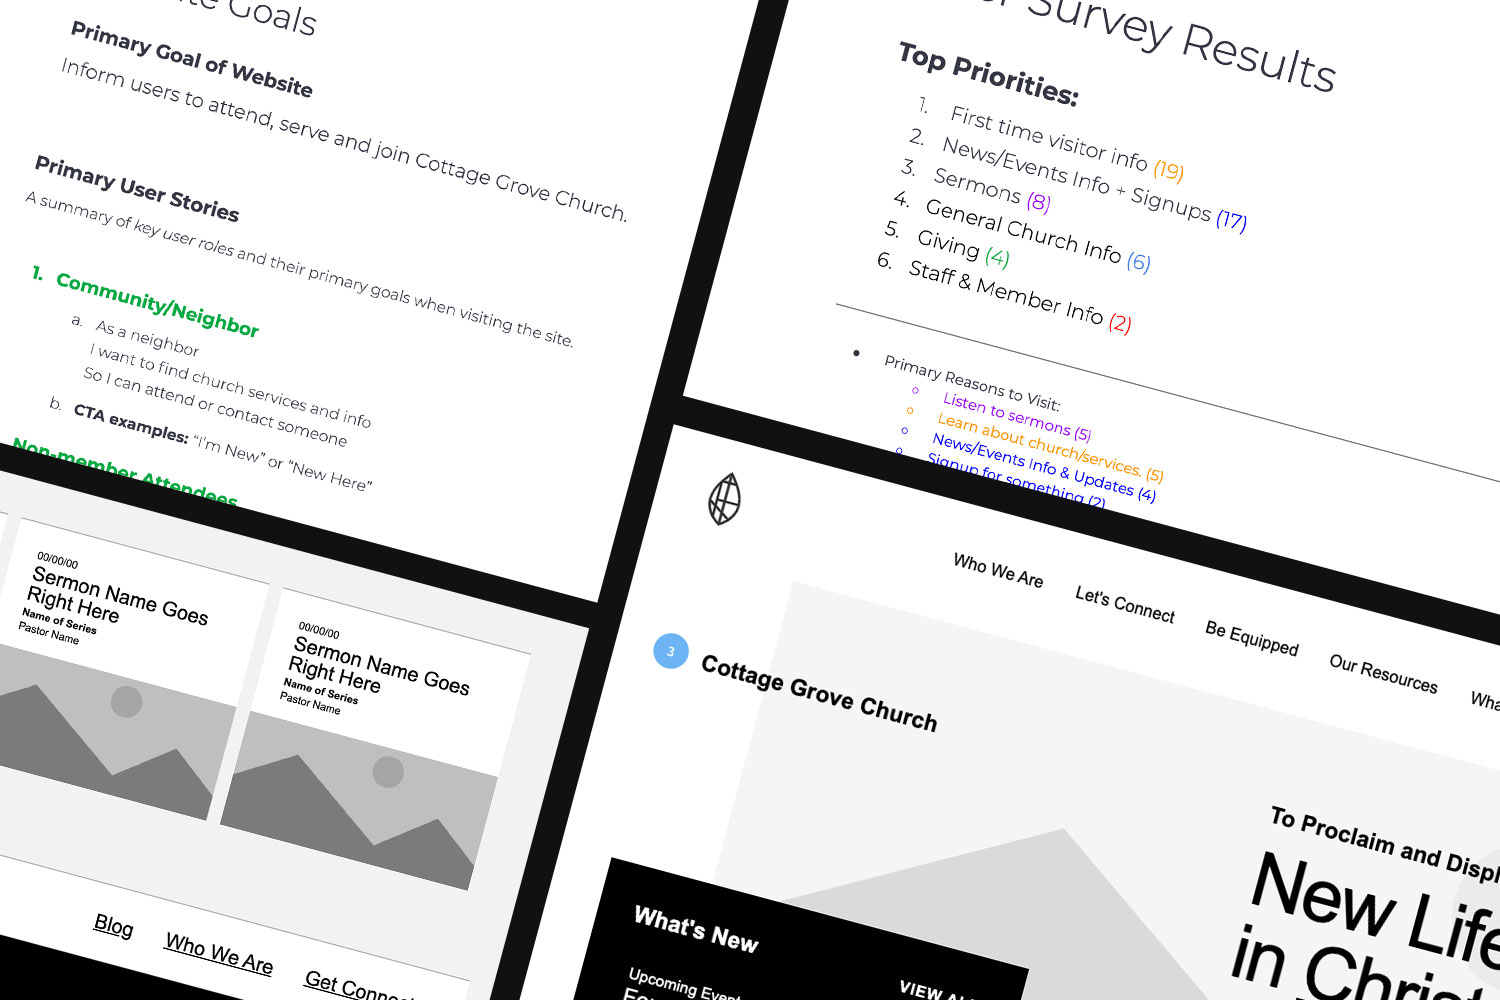 Preview of user surveys, website goals and wireframe